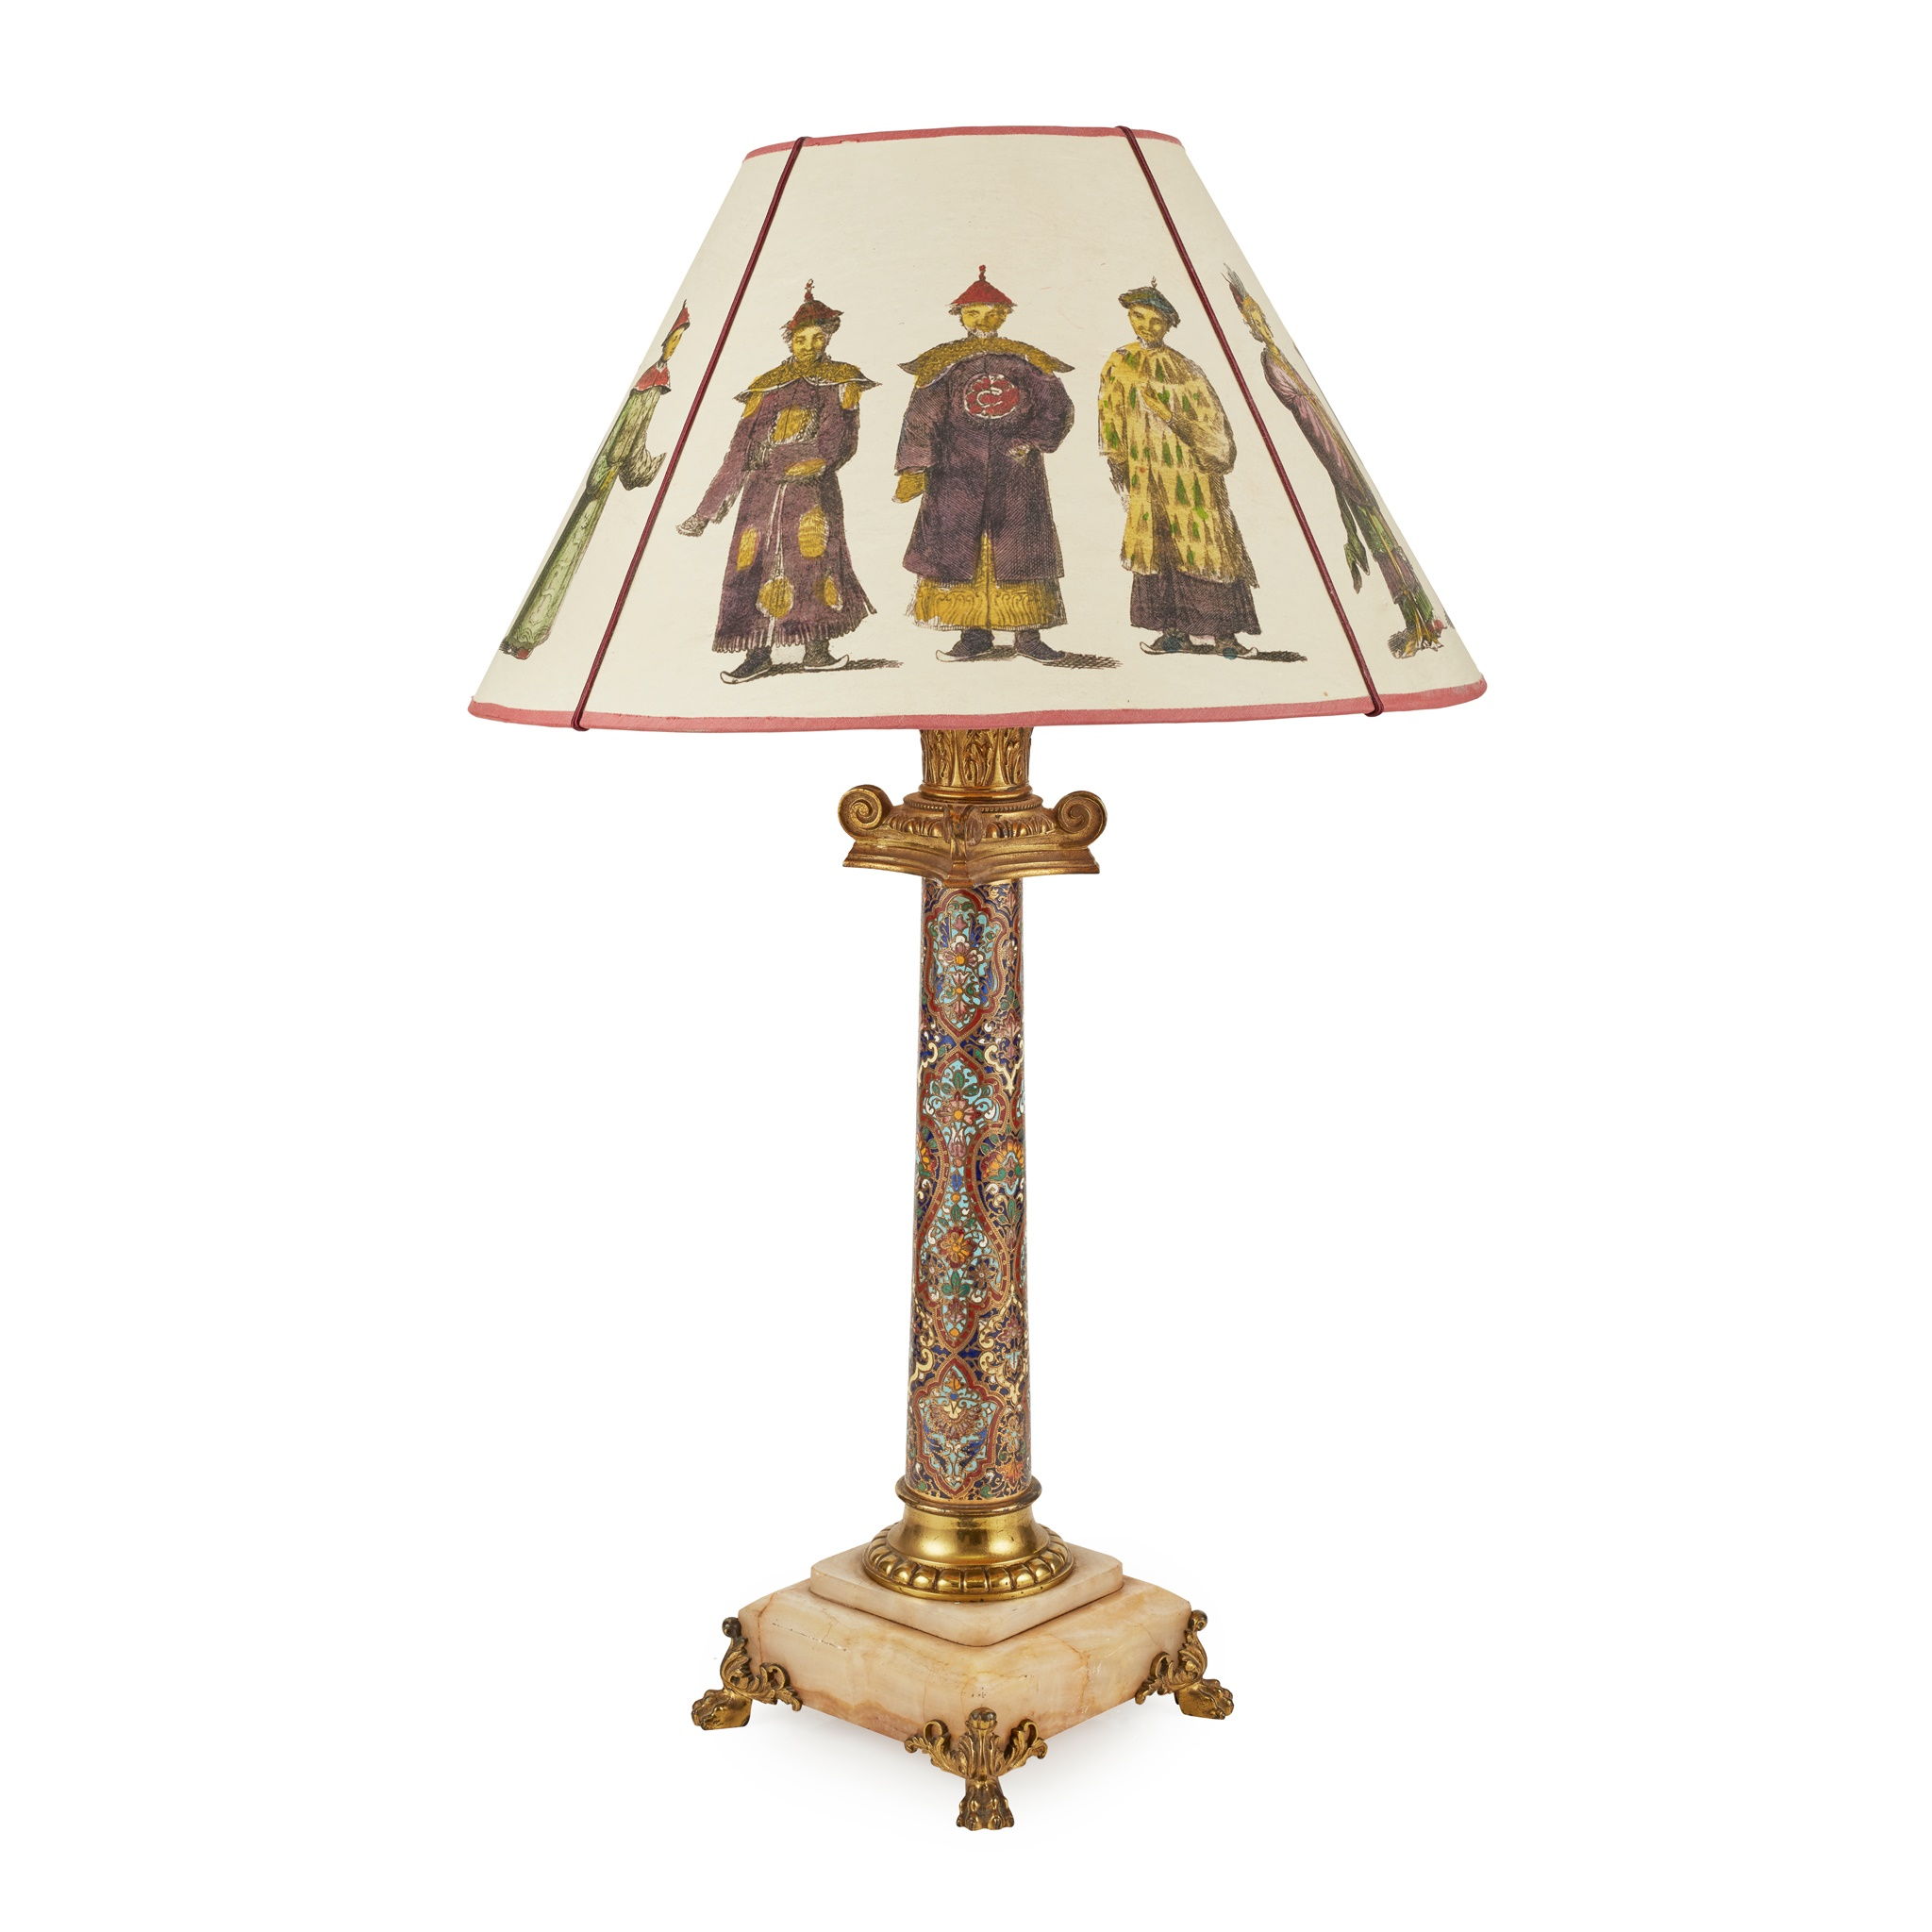 FRENCH CHAMPLEVÉ ENAMEL, GILT BRONZE AND ONYX LAMP 19TH CENTURY